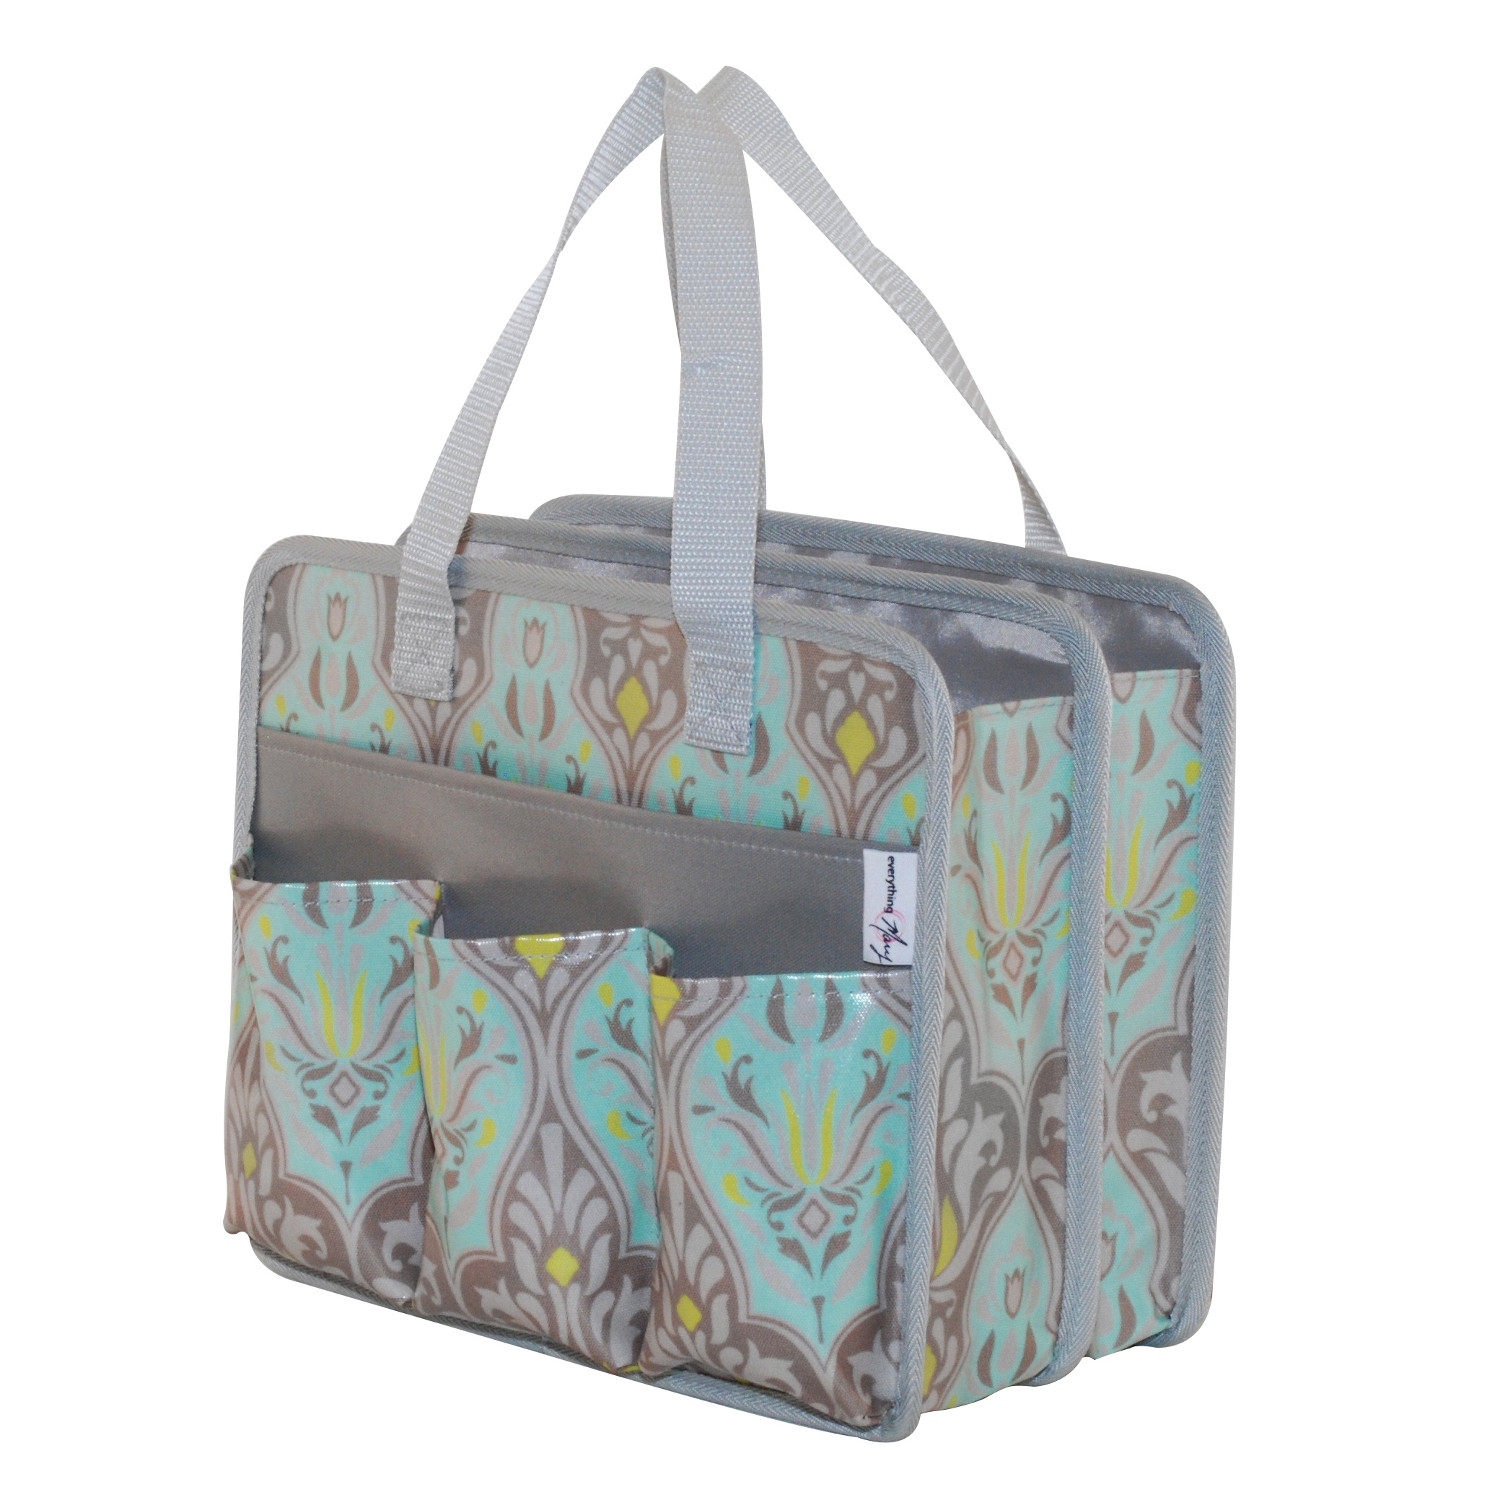 exciting additions  everything mary maker totes